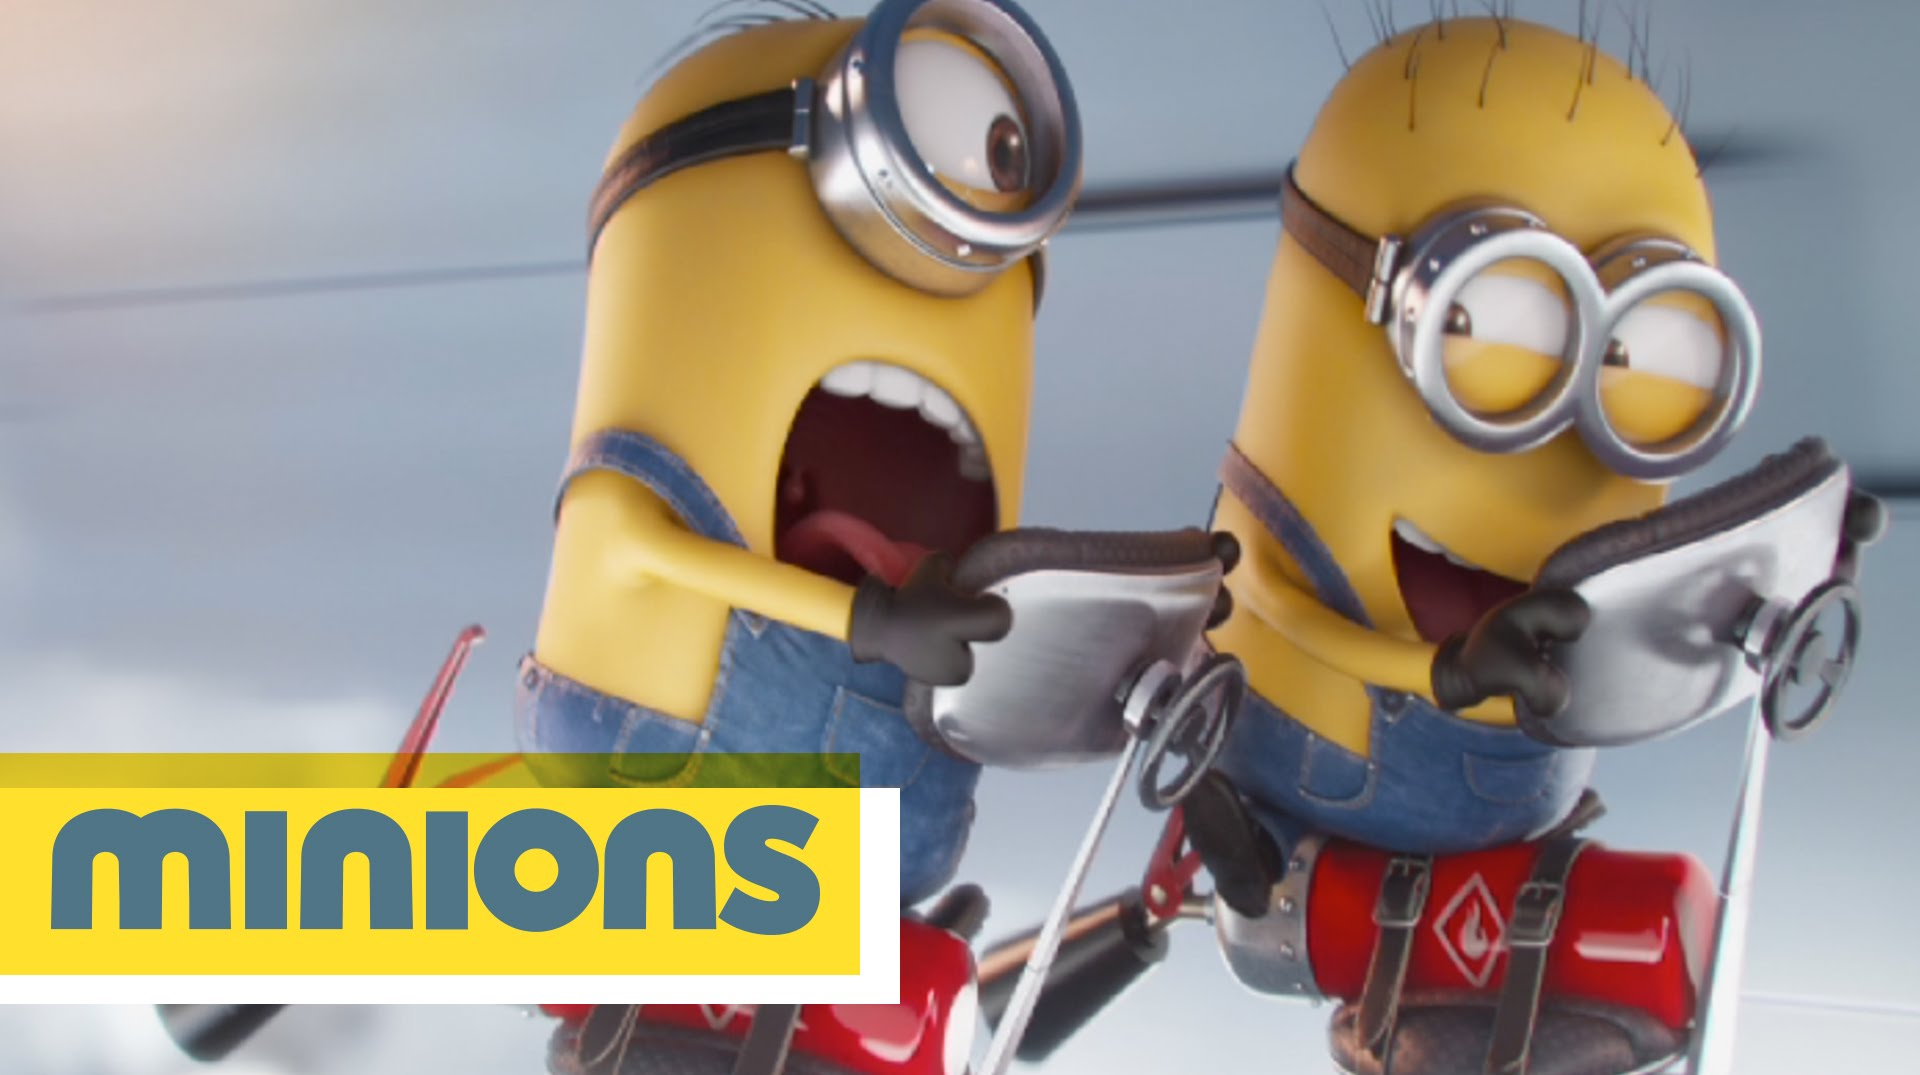 Minions mini-movie 1